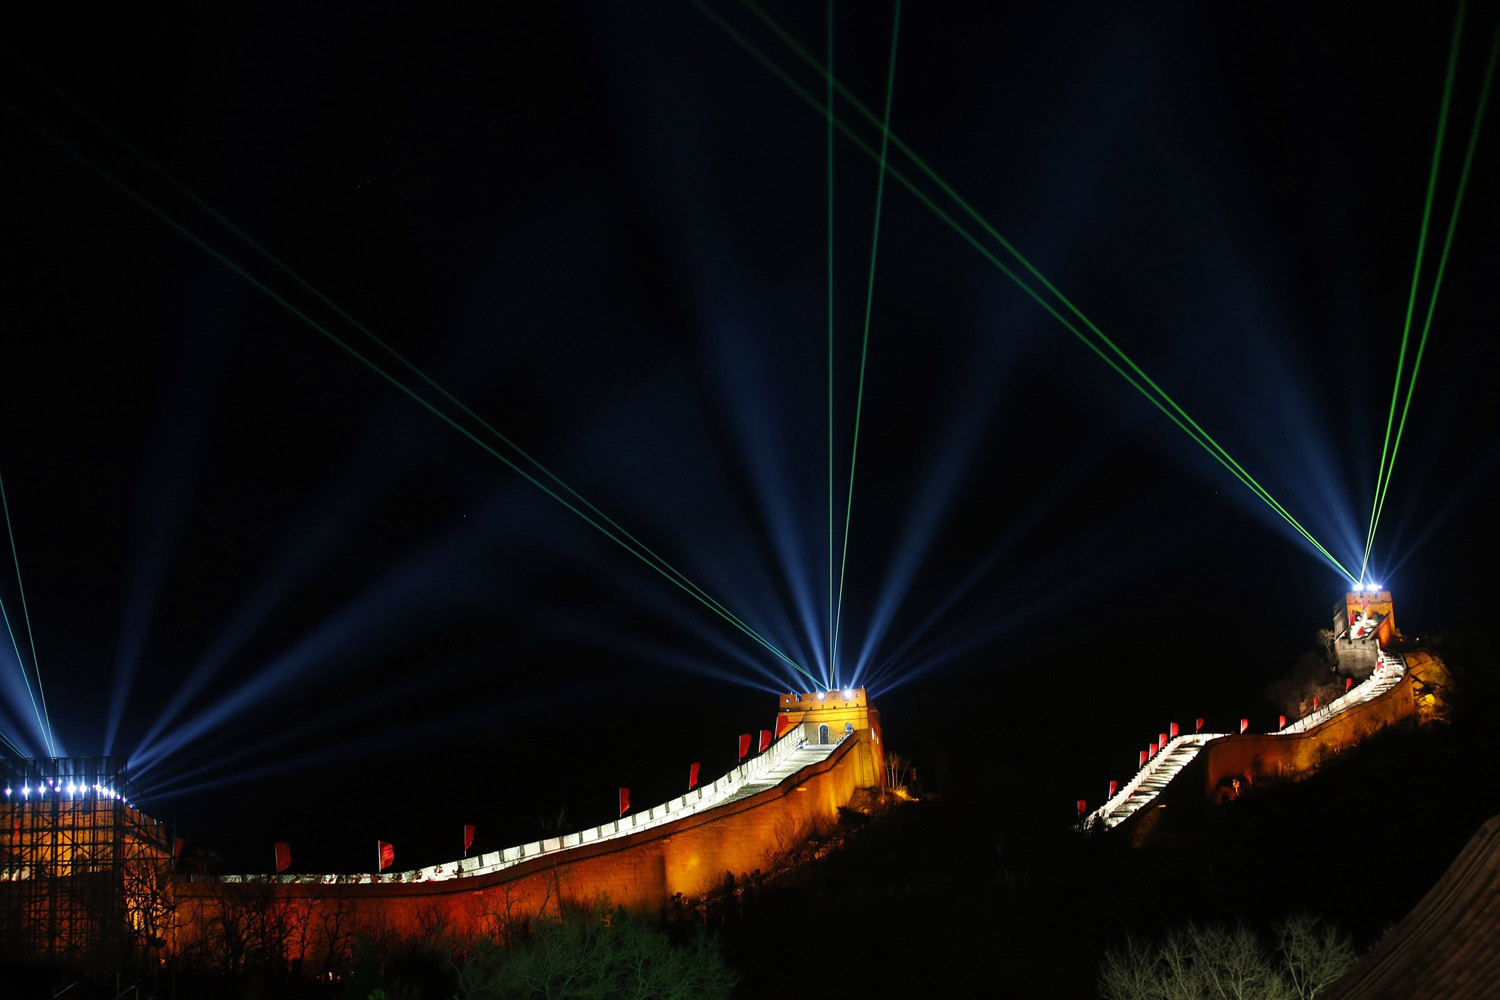 Dec. 31, 2013. Lights and lasers illuminate the Great Wall of China to celebrate the new year at the Badaling section of the Great Wall in Beijing, China.